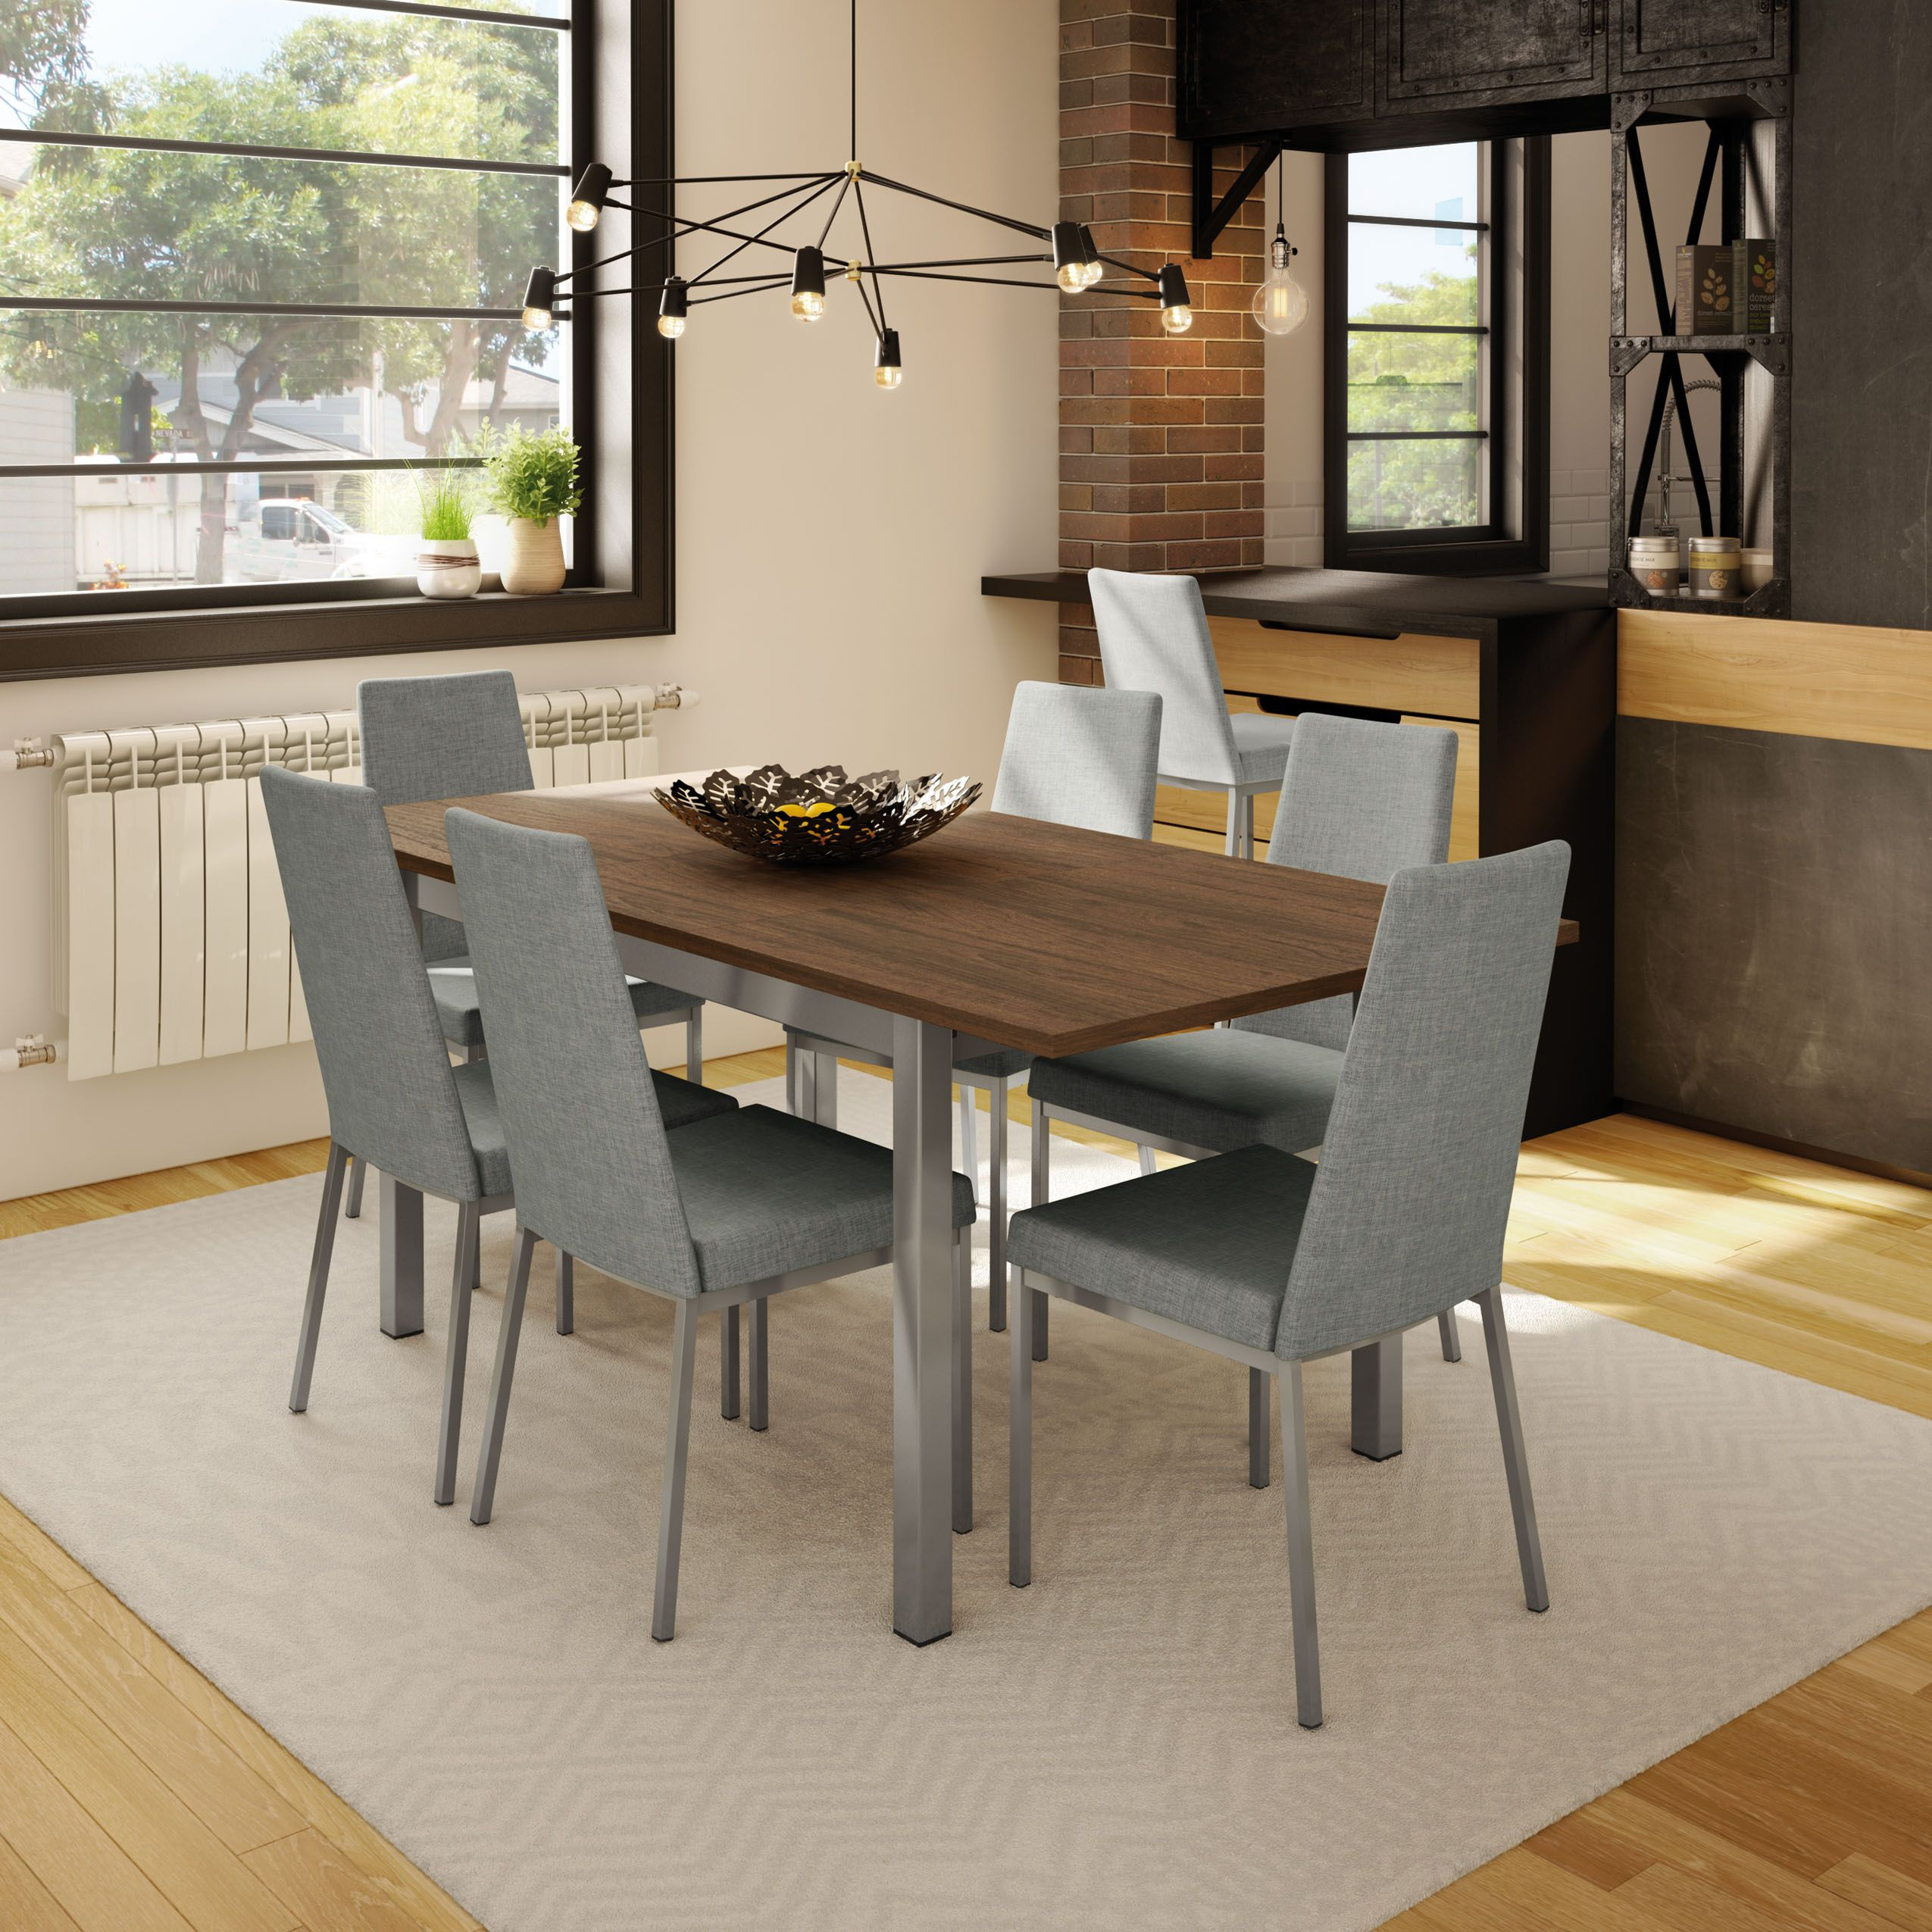 Snugglers Furniture Kitchener Amisco Alley Table 50518 Furniture Kitchen Urban